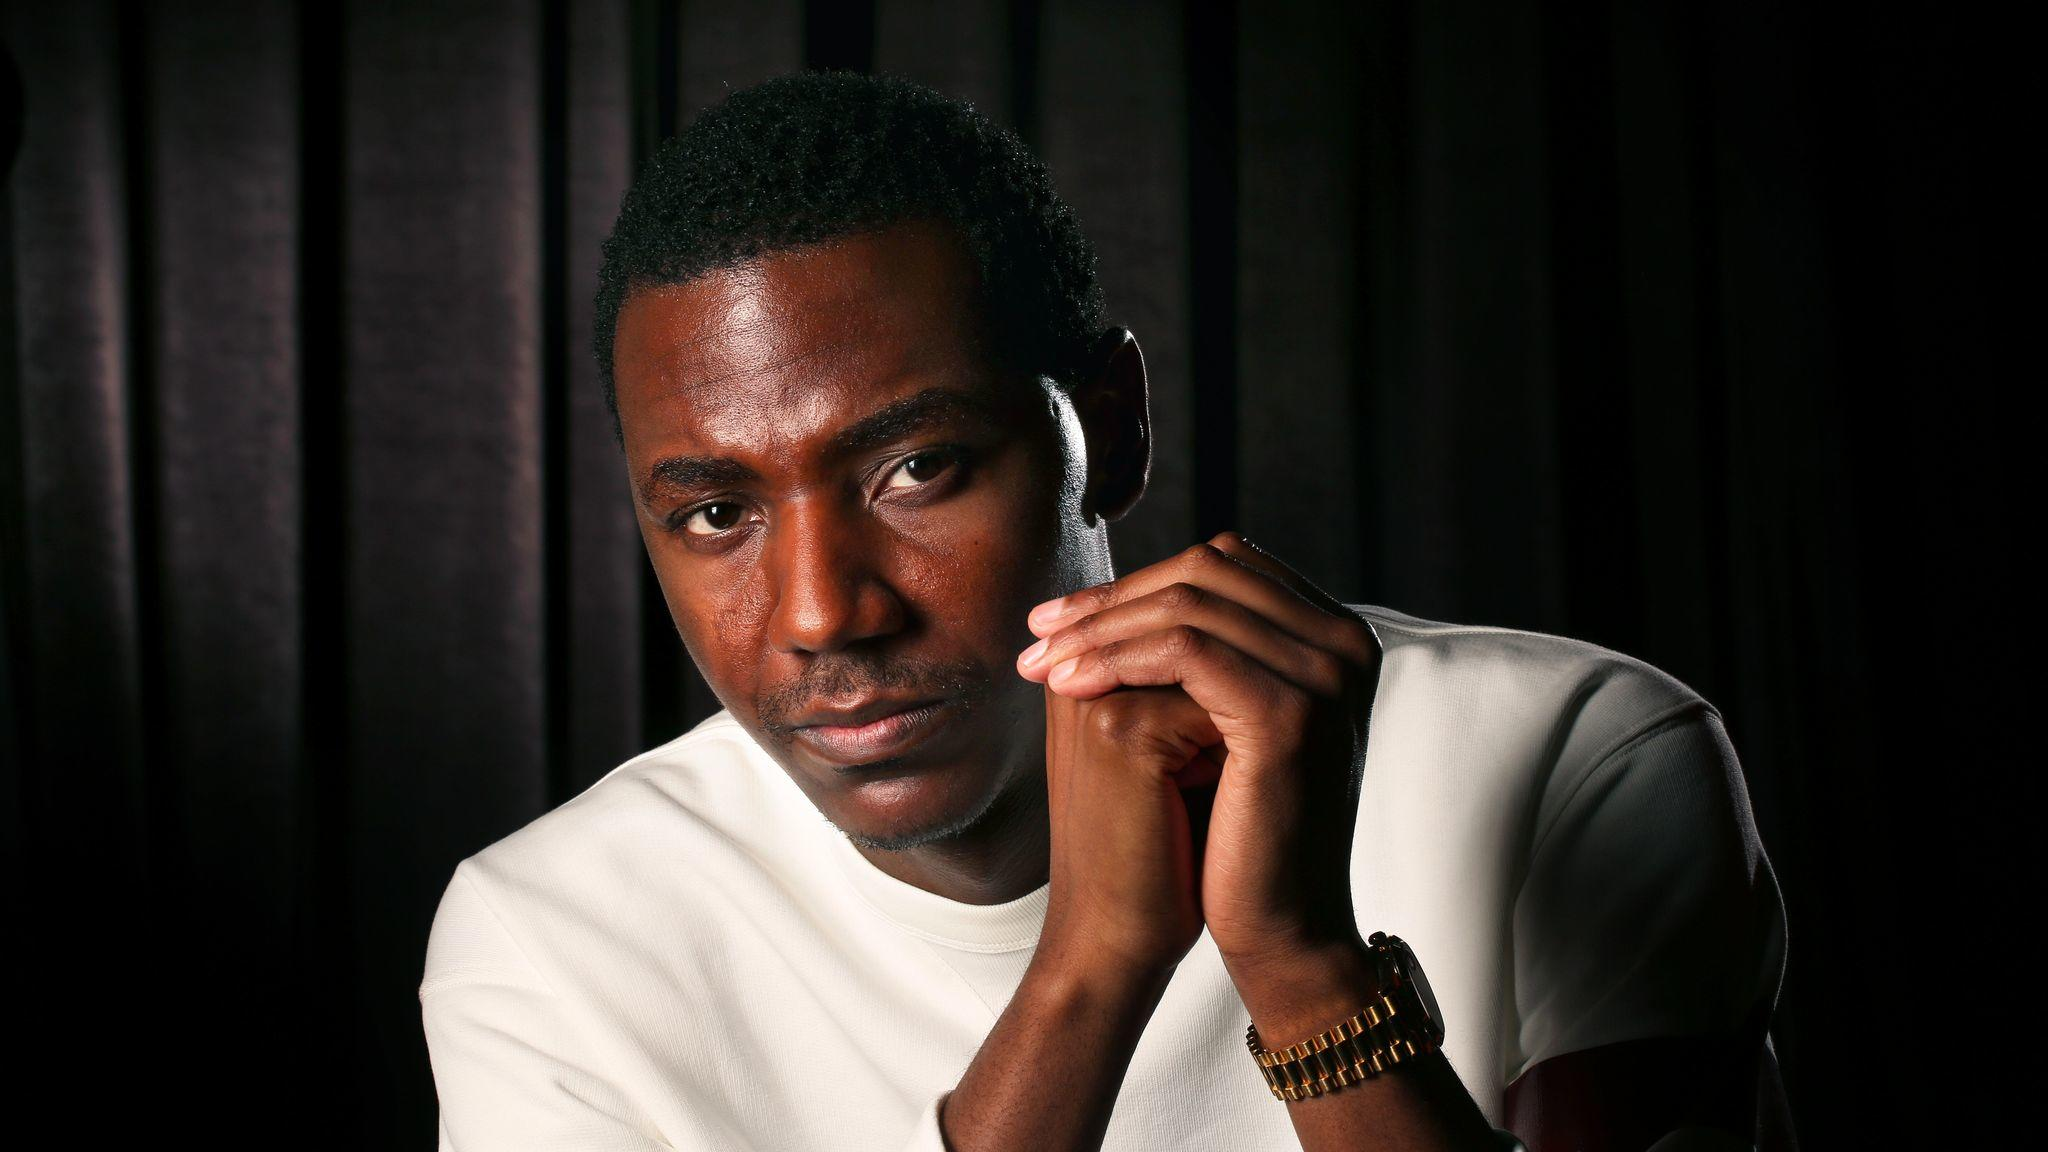 """Jerrod Carmichael is the creator and star of the NBC comedy """"The Carmichael Show."""" (Rick Loomis / Los Angeles Times)"""